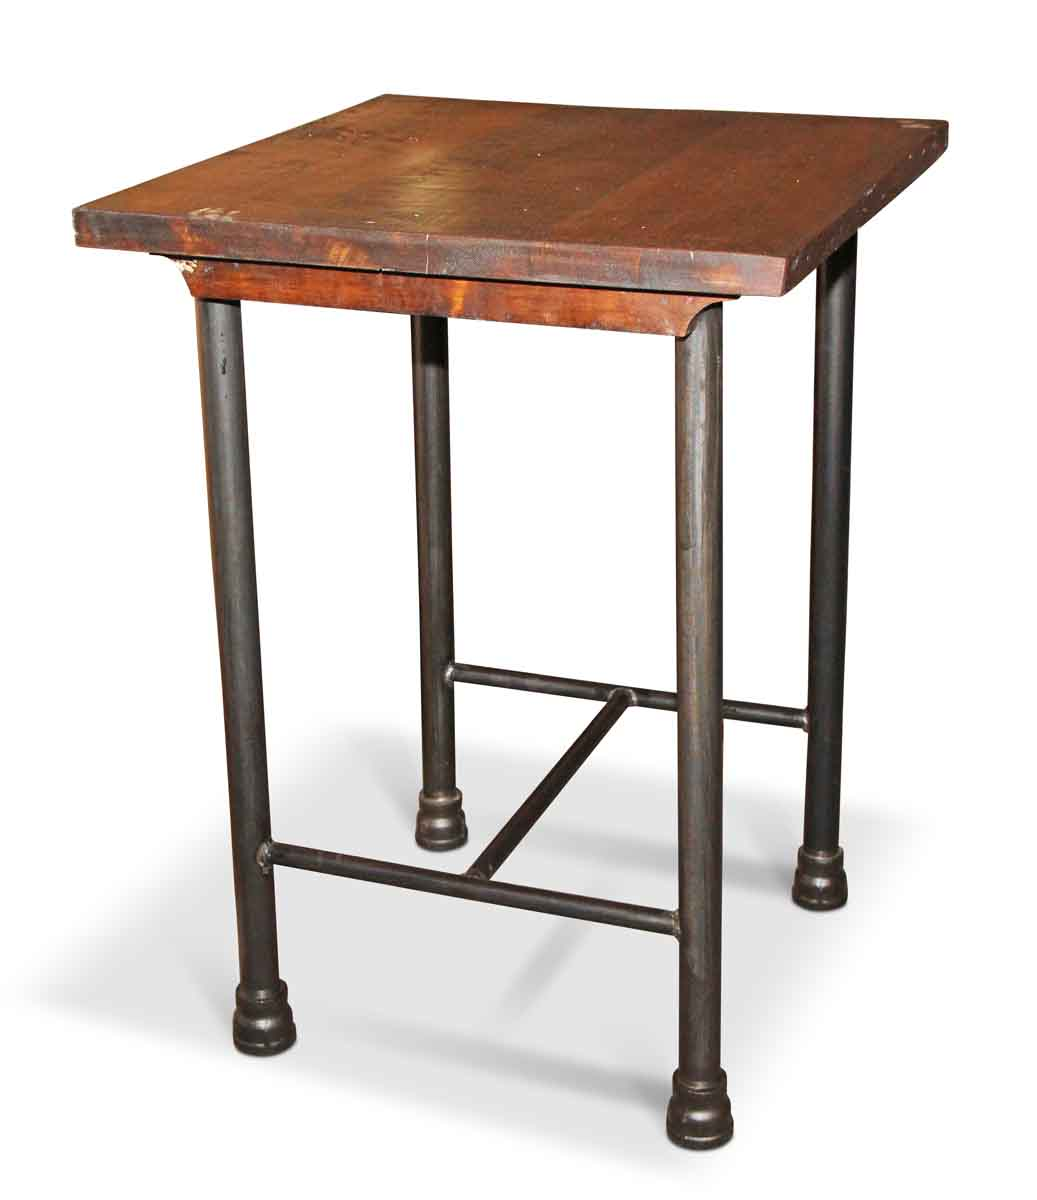 Tall Table Square Kitchen Island Or Tall Side Table | Olde Good Things